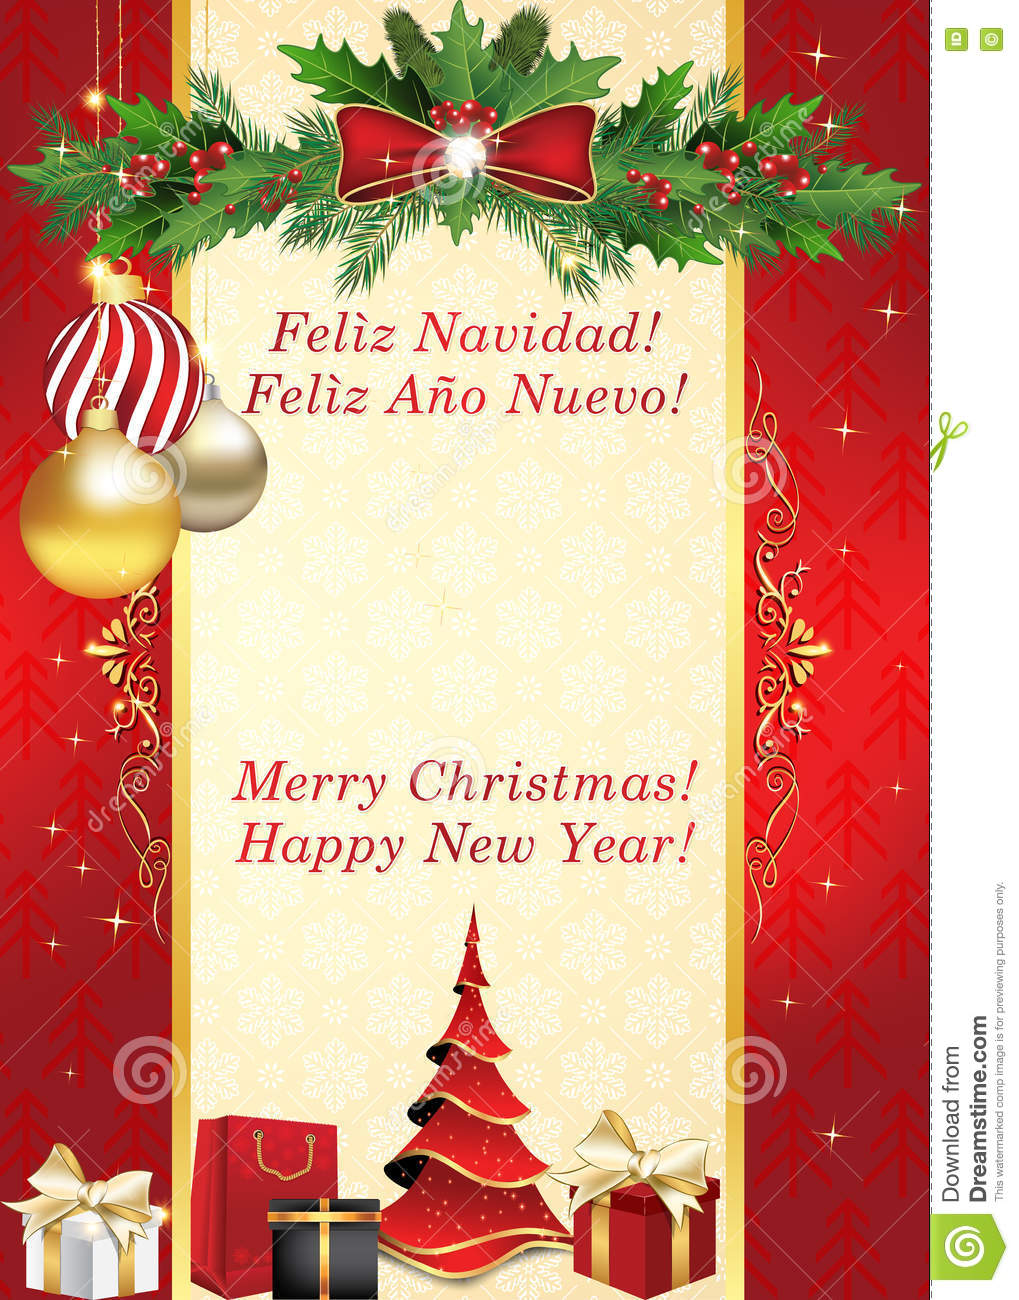 Merry Christmas And Happy New Year - Spanish Greeting Card Stock ...